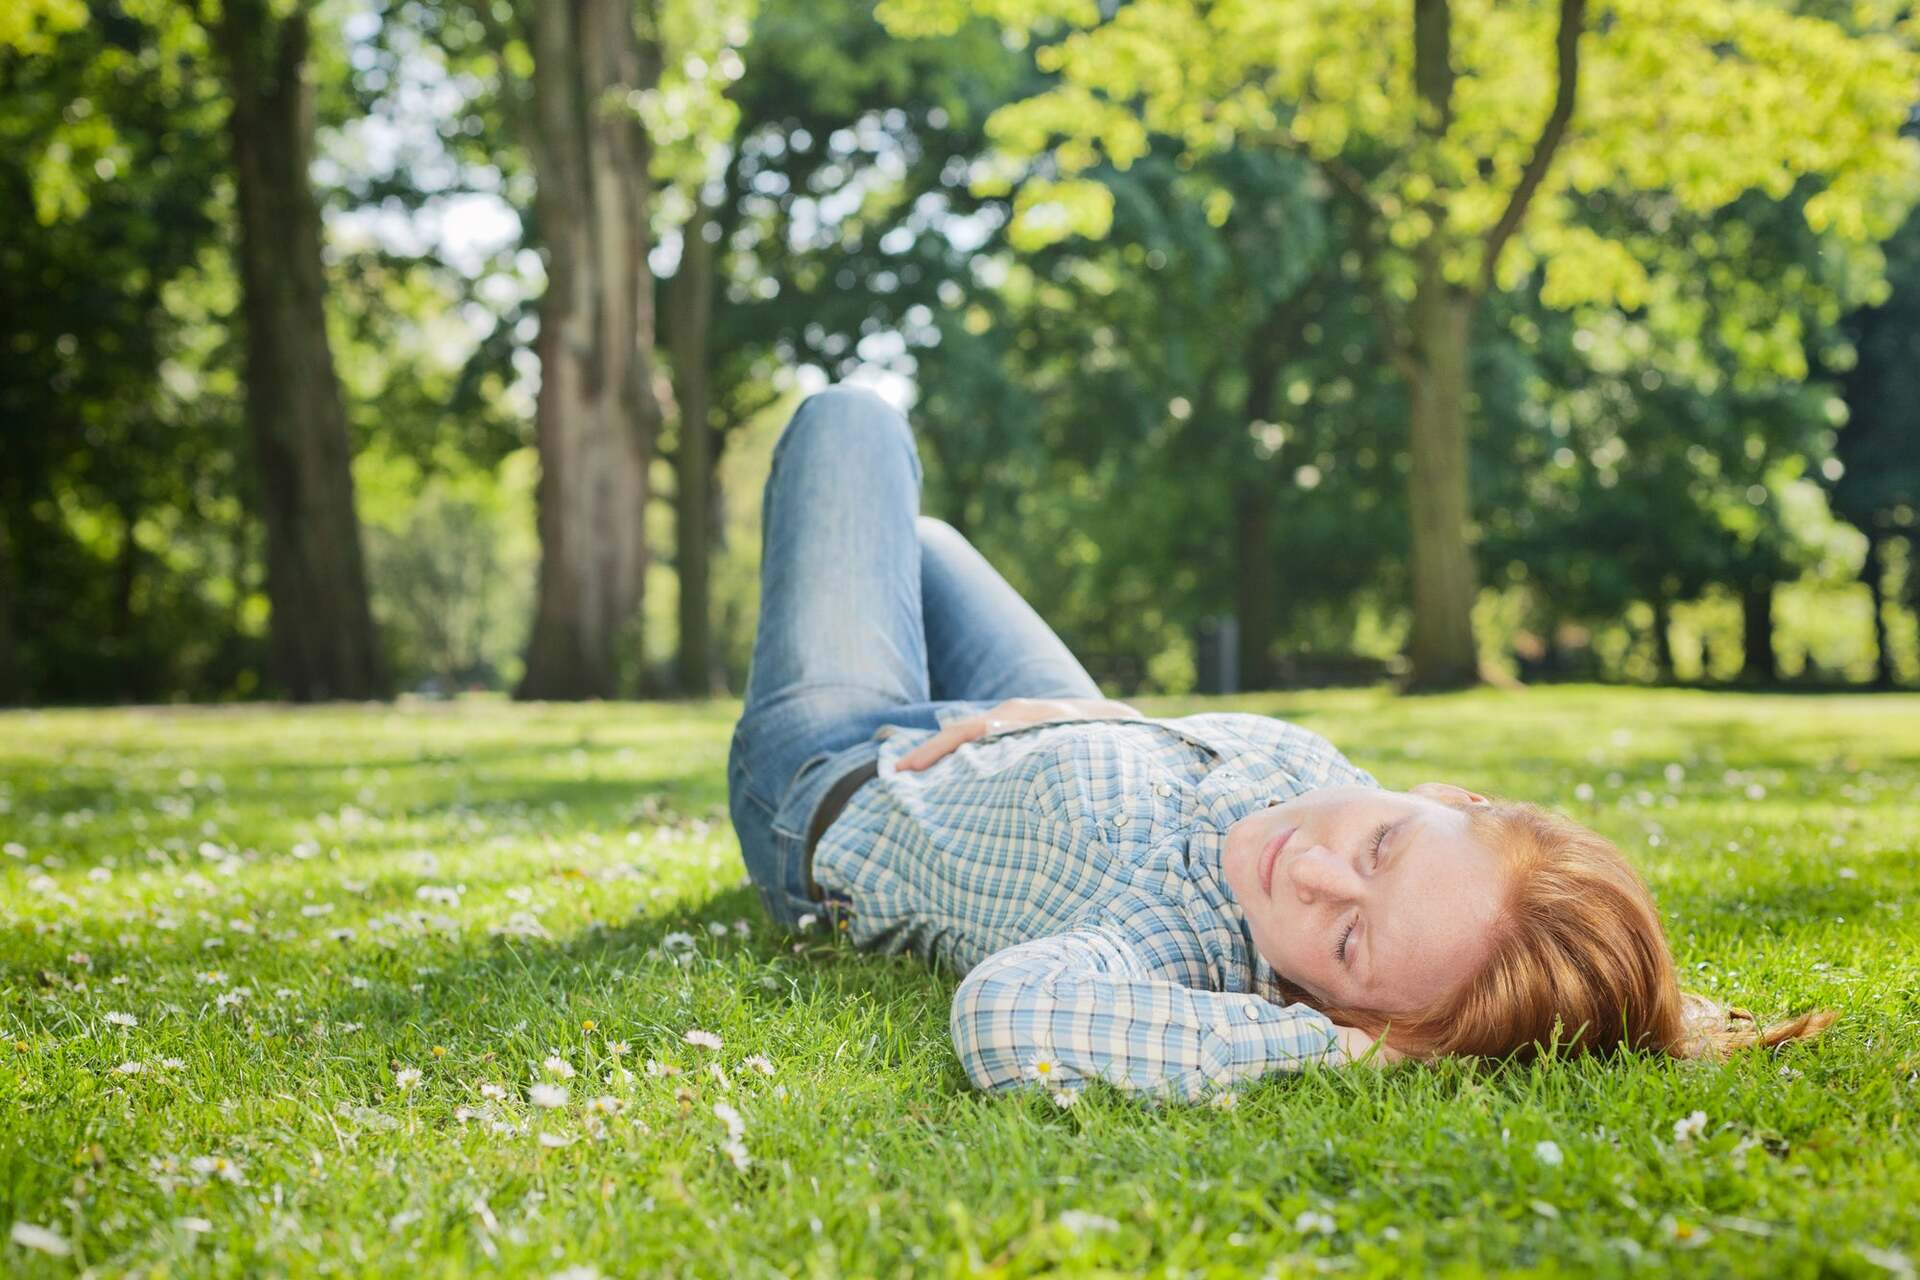 Best Outdoor Spots To Catch Some ZZZ's